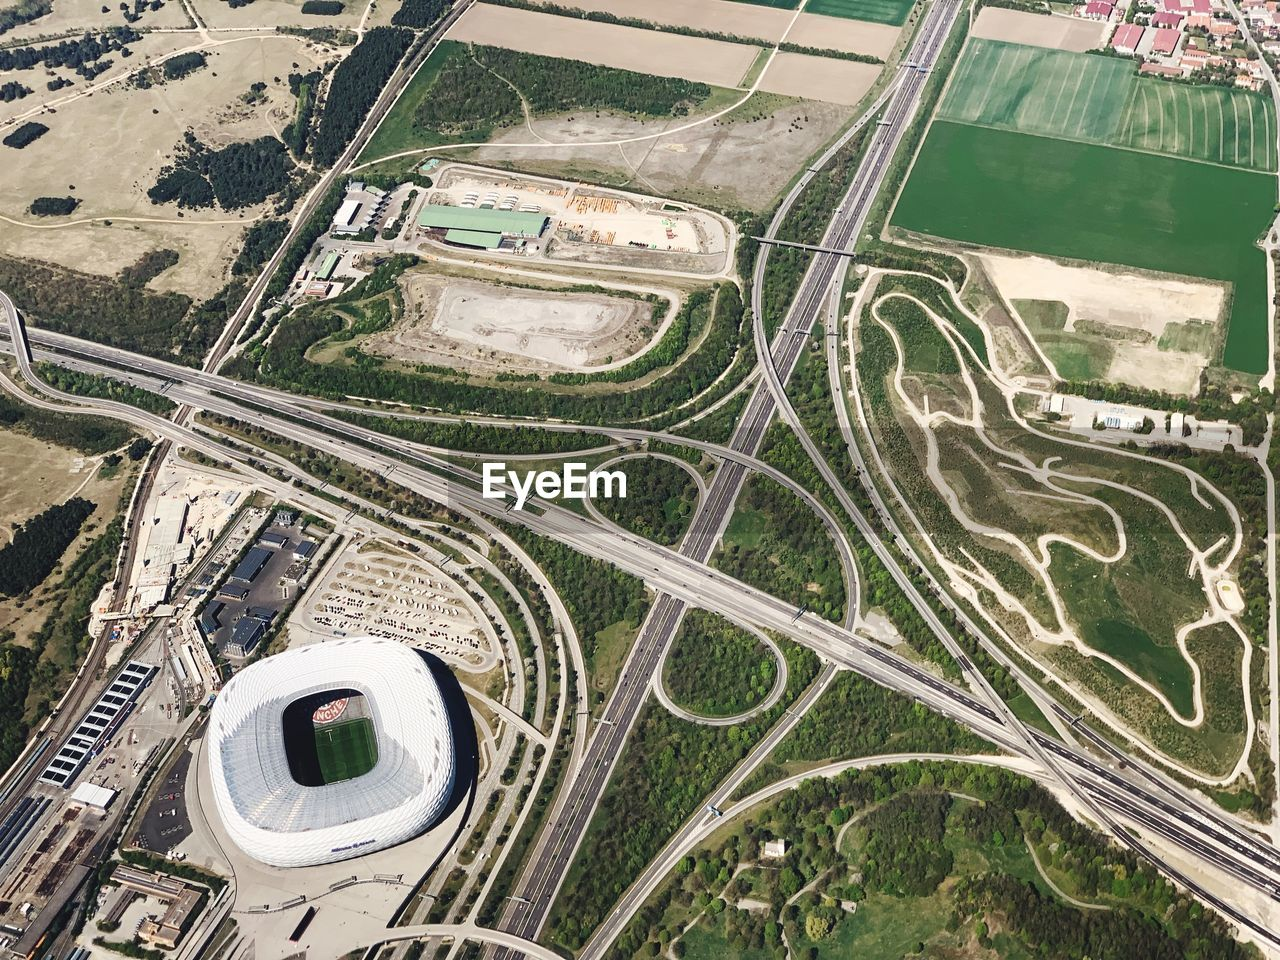 aerial view, road, transportation, high angle view, mode of transportation, built structure, no people, day, architecture, city, environment, outdoors, air vehicle, airplane, landscape, nature, flying, street, travel, motor vehicle, overpass, complexity, multiple lane highway